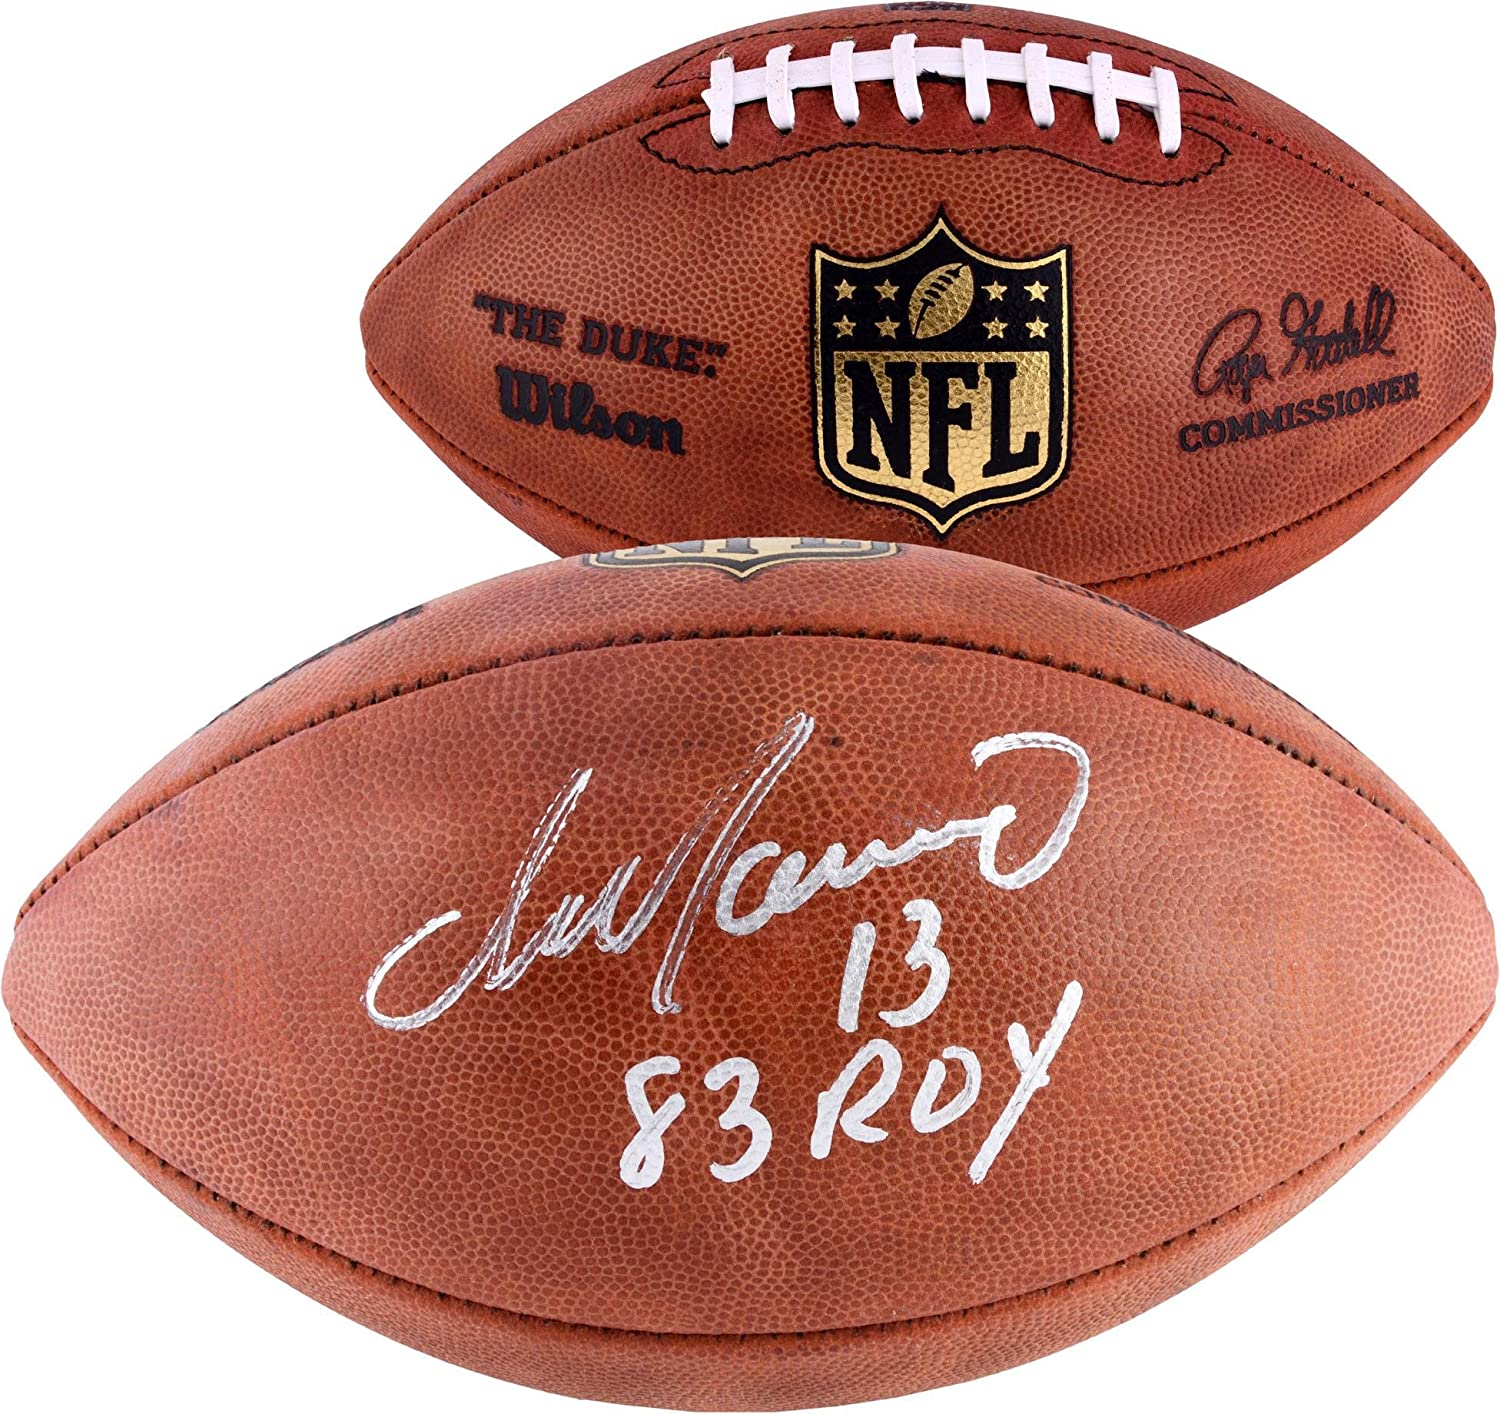 Dan Marino Miami Dolphins Autographed Duke Pro Football with 83 ROY  Inscription - Fanatics Authentic Certified at Amazon s Sports Collectibles  Store 535f39f6a